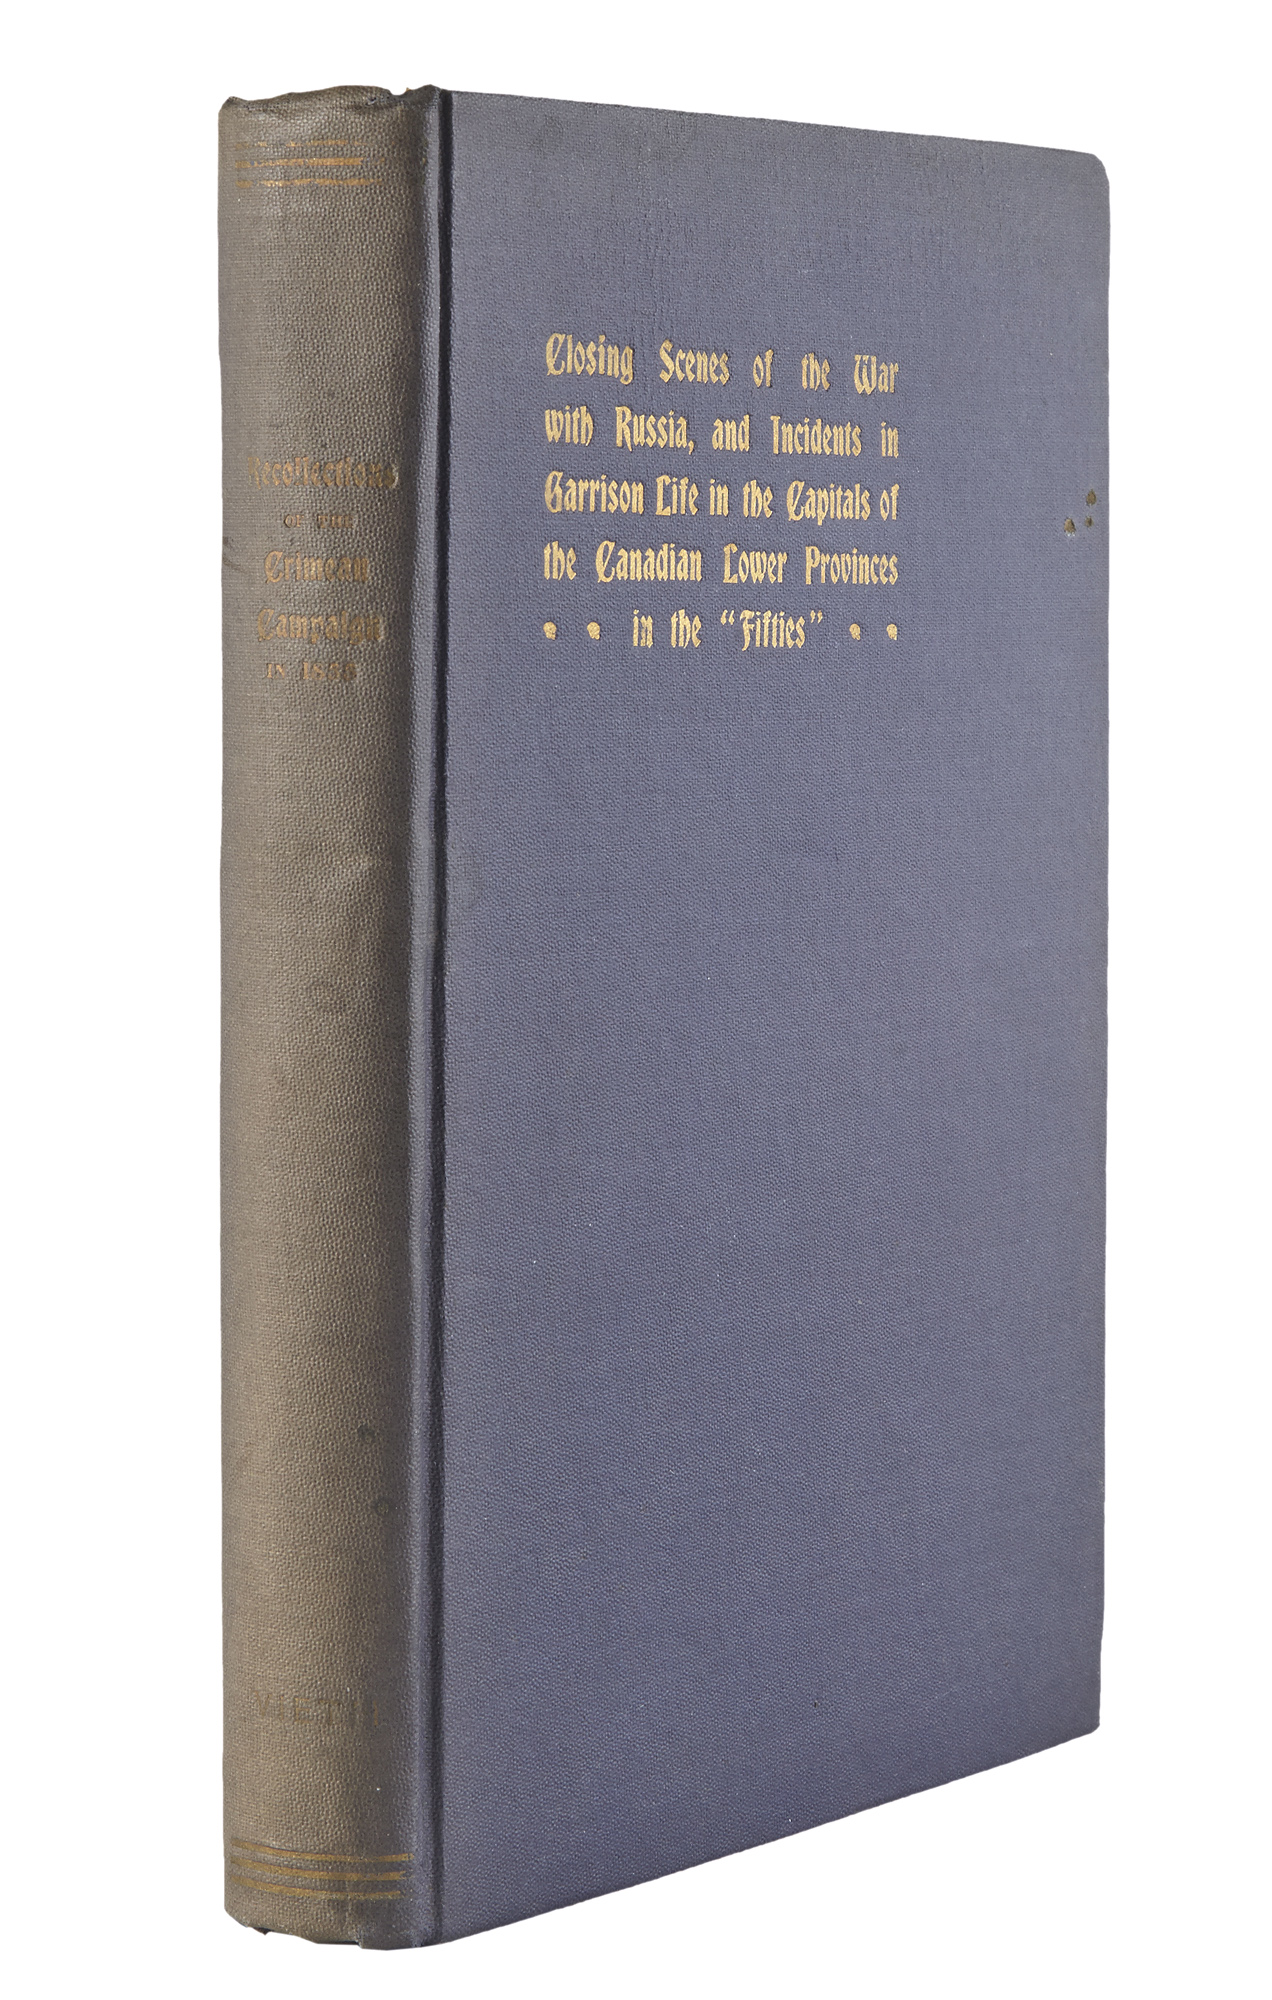 Lot image - [CANADA]  VIETH, FREDERICK H. D. Recollections of the Crimean Campaign and the Expedition to Kinburn in 1855. Including also sporting and dramatic incidents in connection with garrison life in the Canadian lower provinces.